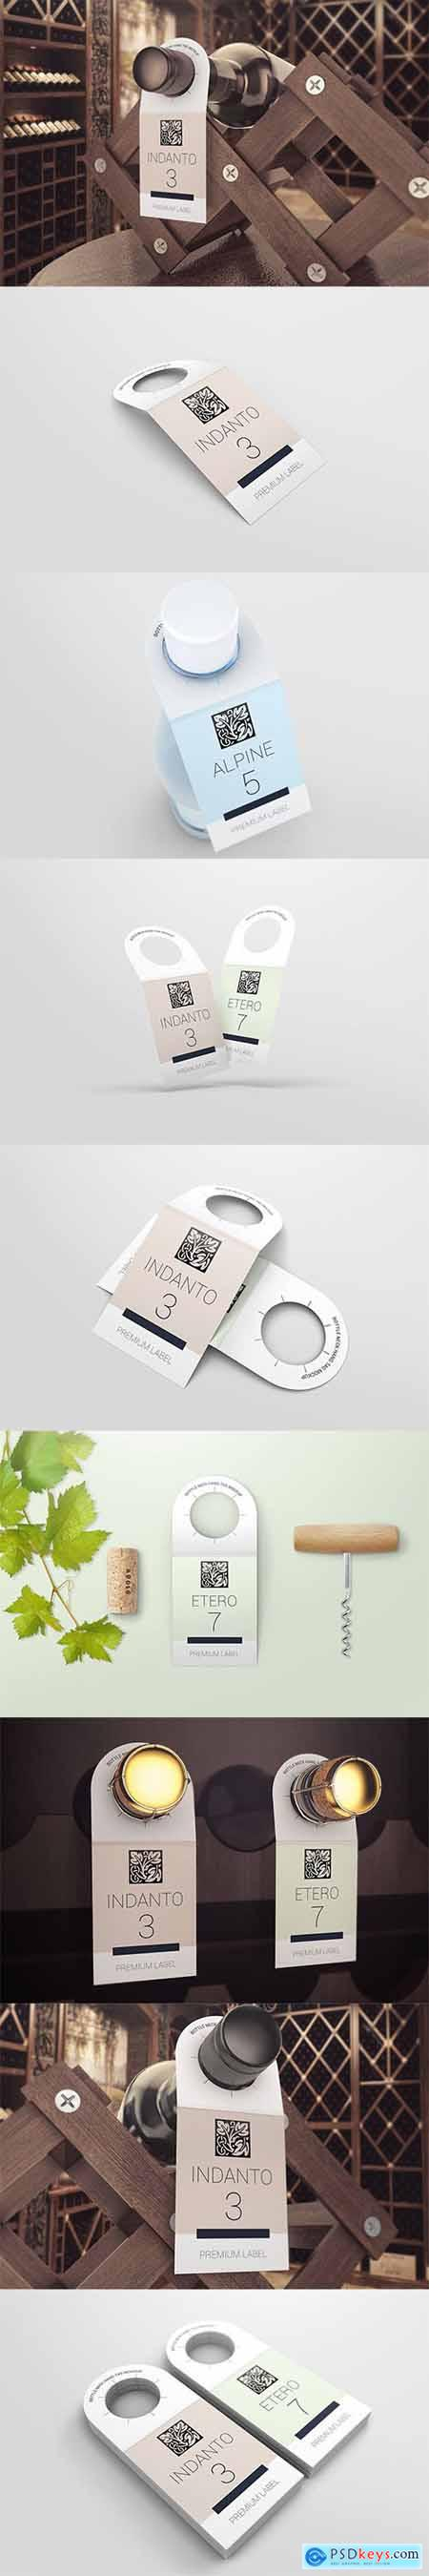 Bottle Neck Hang Tag Mockup